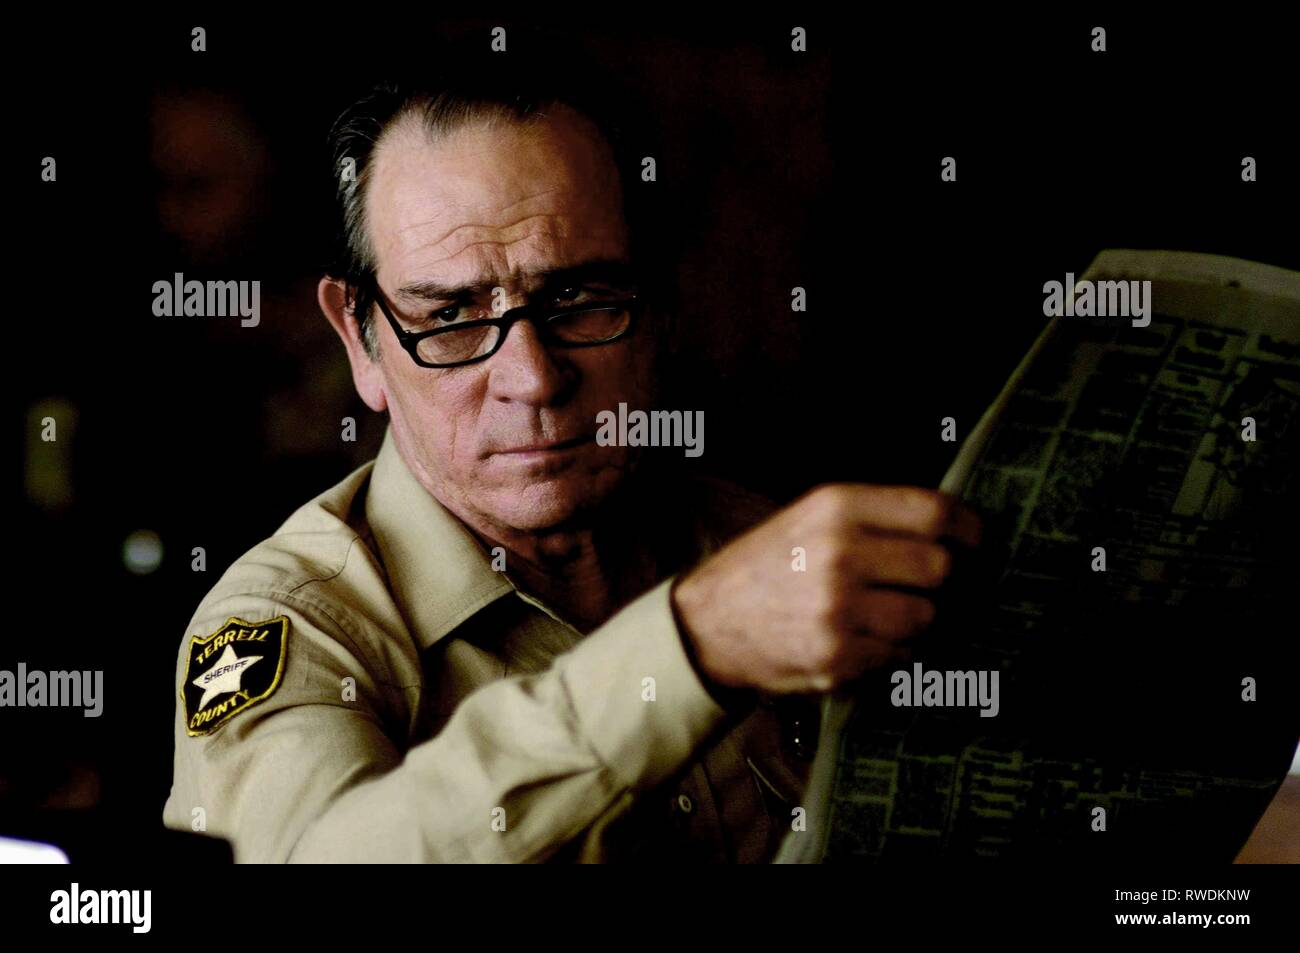 TOMMY LEE JONES, NO COUNTRY FOR OLD MEN, 2007 - Stock Image